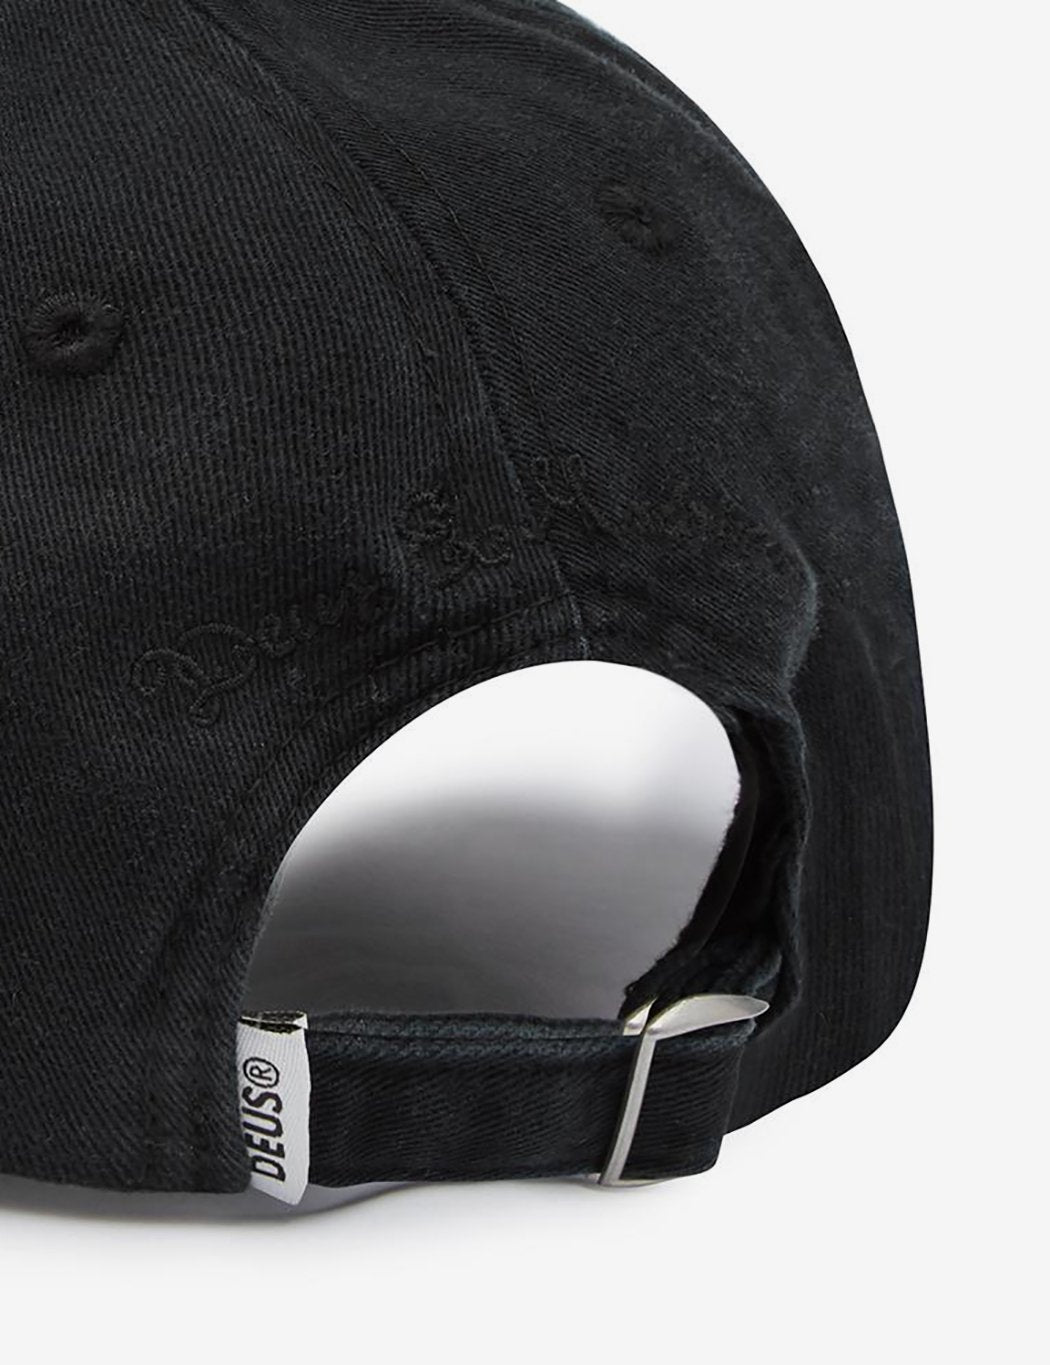 Deus Ex Machina Sunny 6-Panel Cap - Soft Black